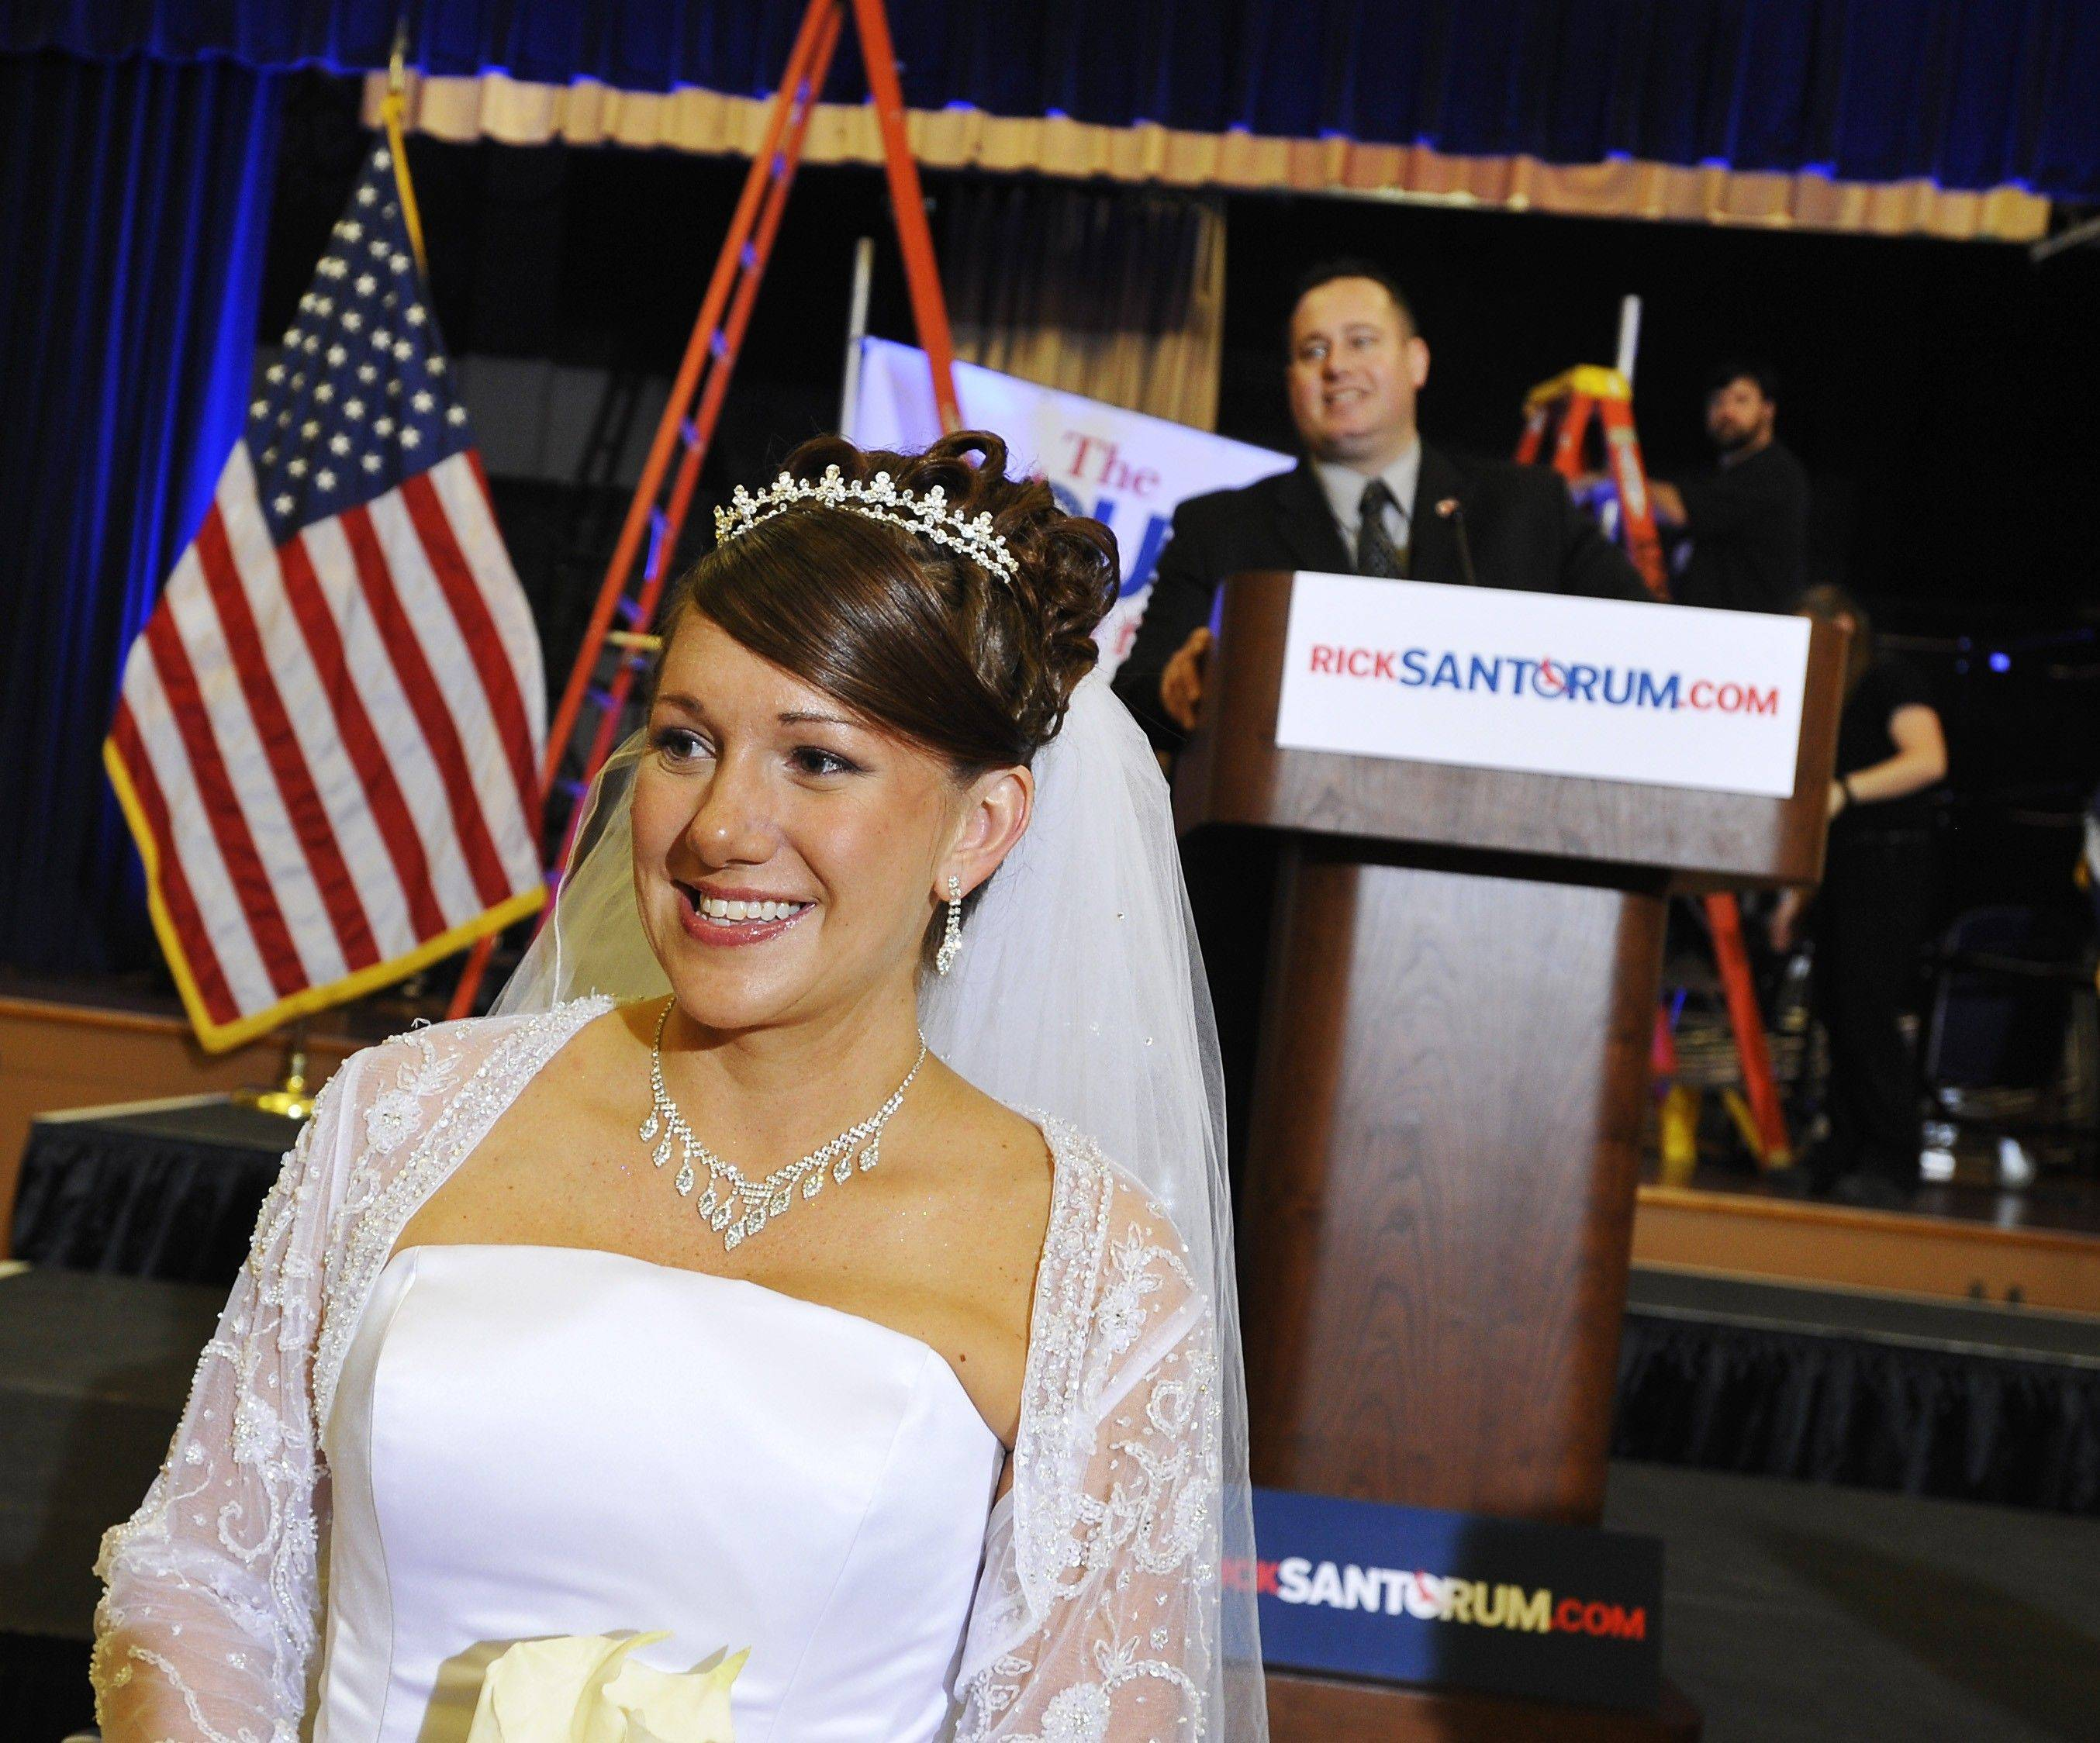 Sarah Heath, left, poses Saturday for a wedding photographer on her wedding day as Rick Santorum campaign volunteer Mike Rendino looks on at the podium before a primary elections party at the Citadel in Charleston, S.C.